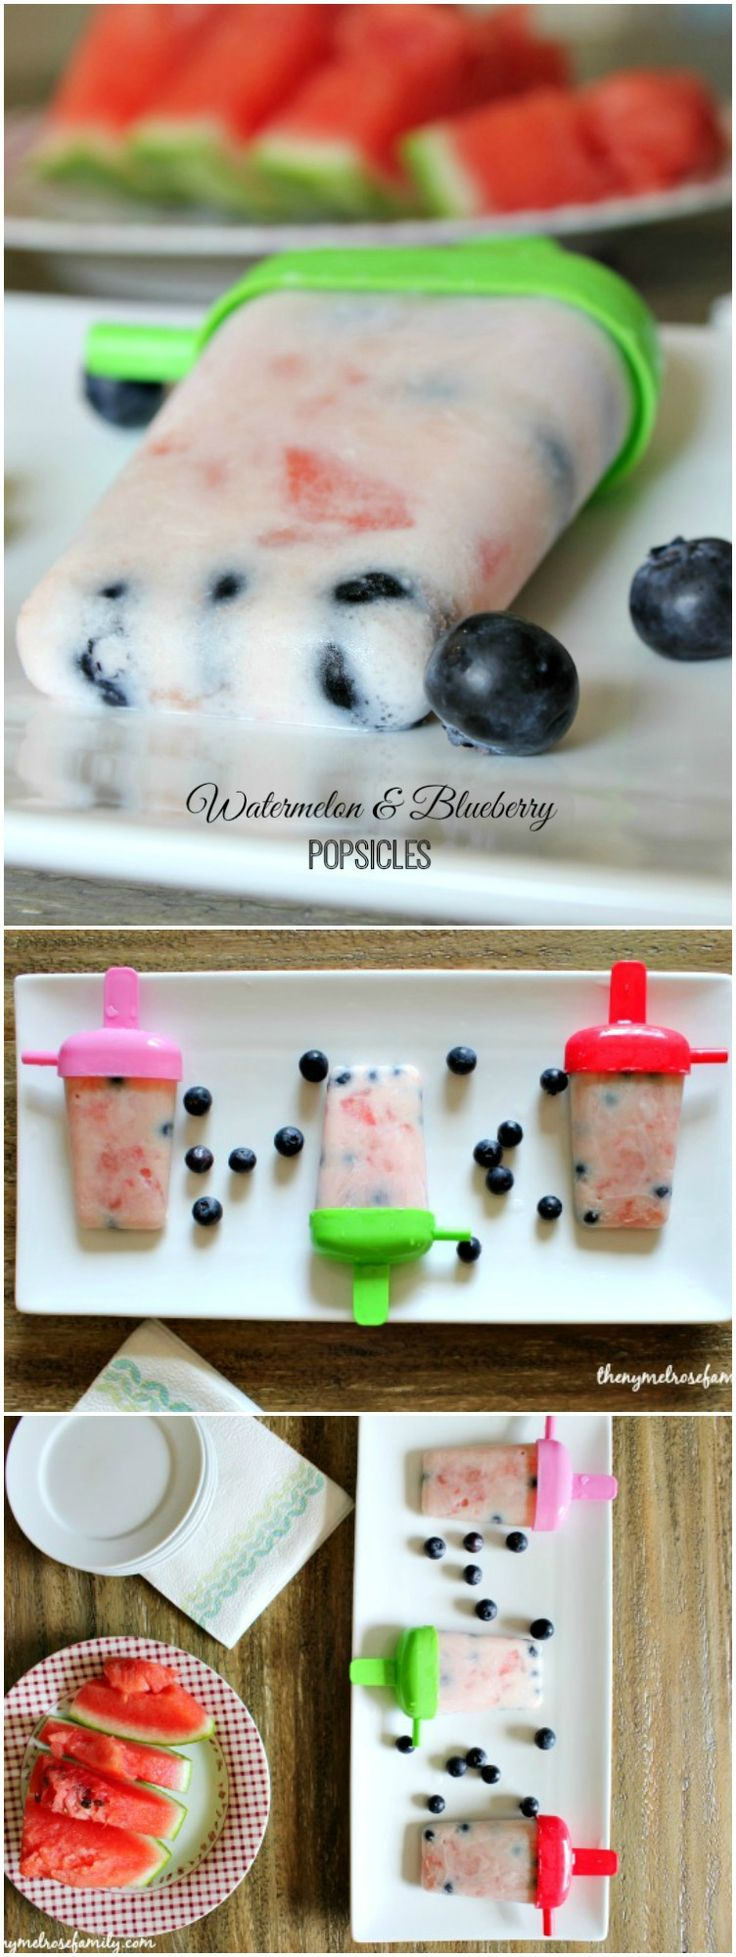 Watermelon & Blueberry Popsicles are the perfect healthy and refreshing treat for your Summer fun.